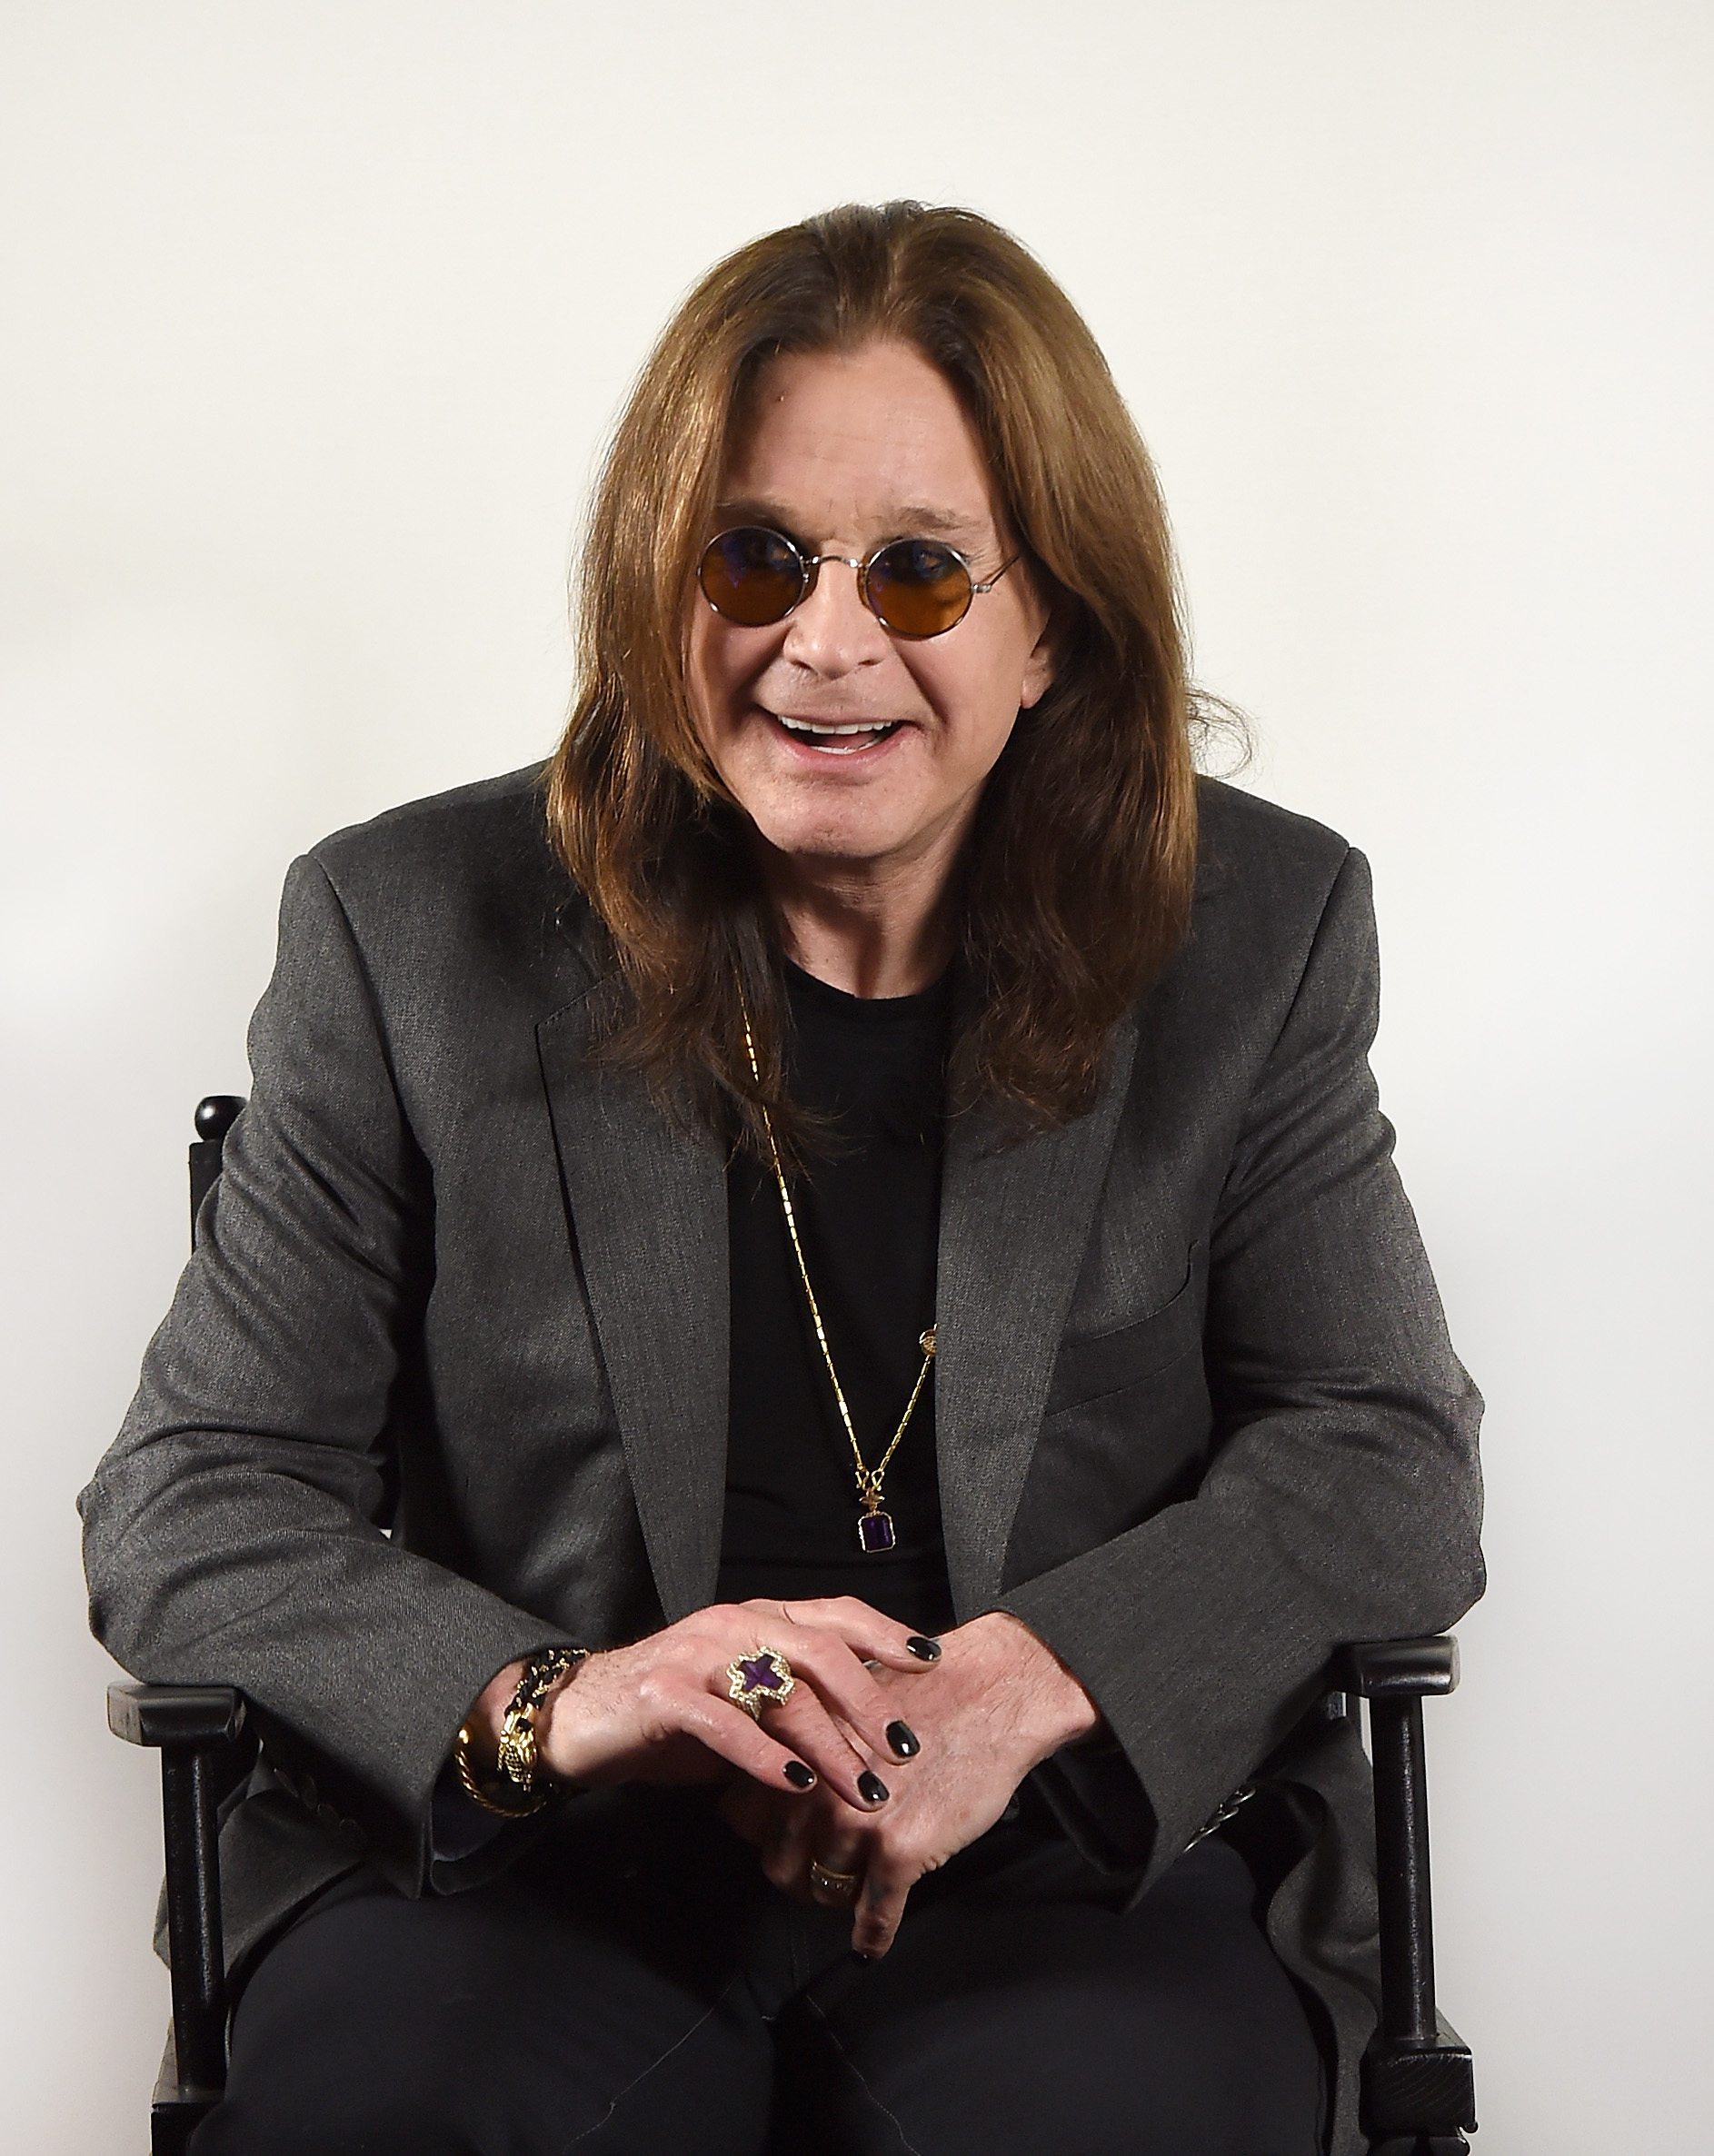 Ozzy Osbourne rushed to hospital as bronchitis worsens (Source: Getty Images)